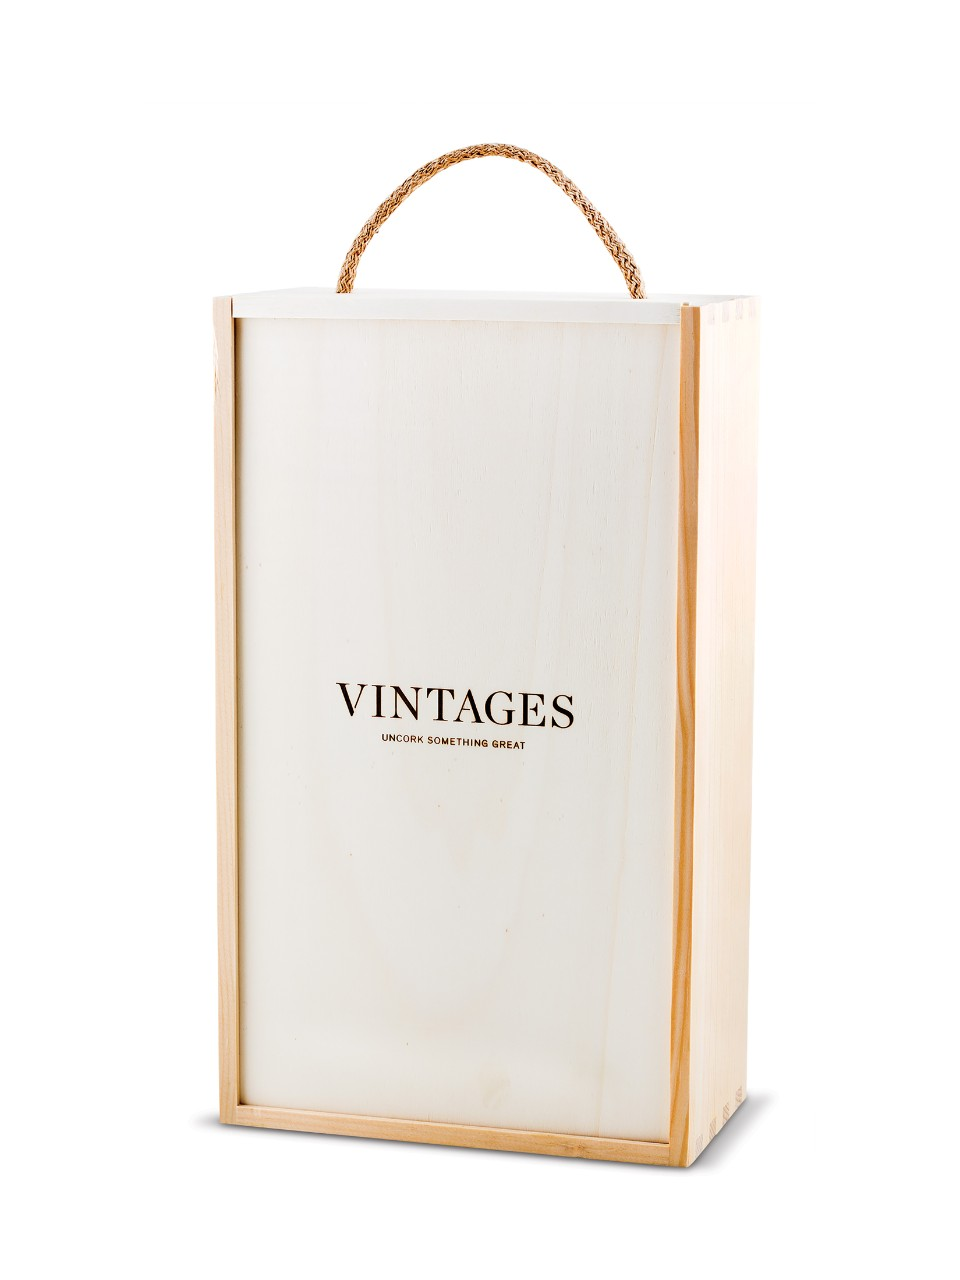 Image for Vintages Wooden Box - 2 Bottle Box from LCBO